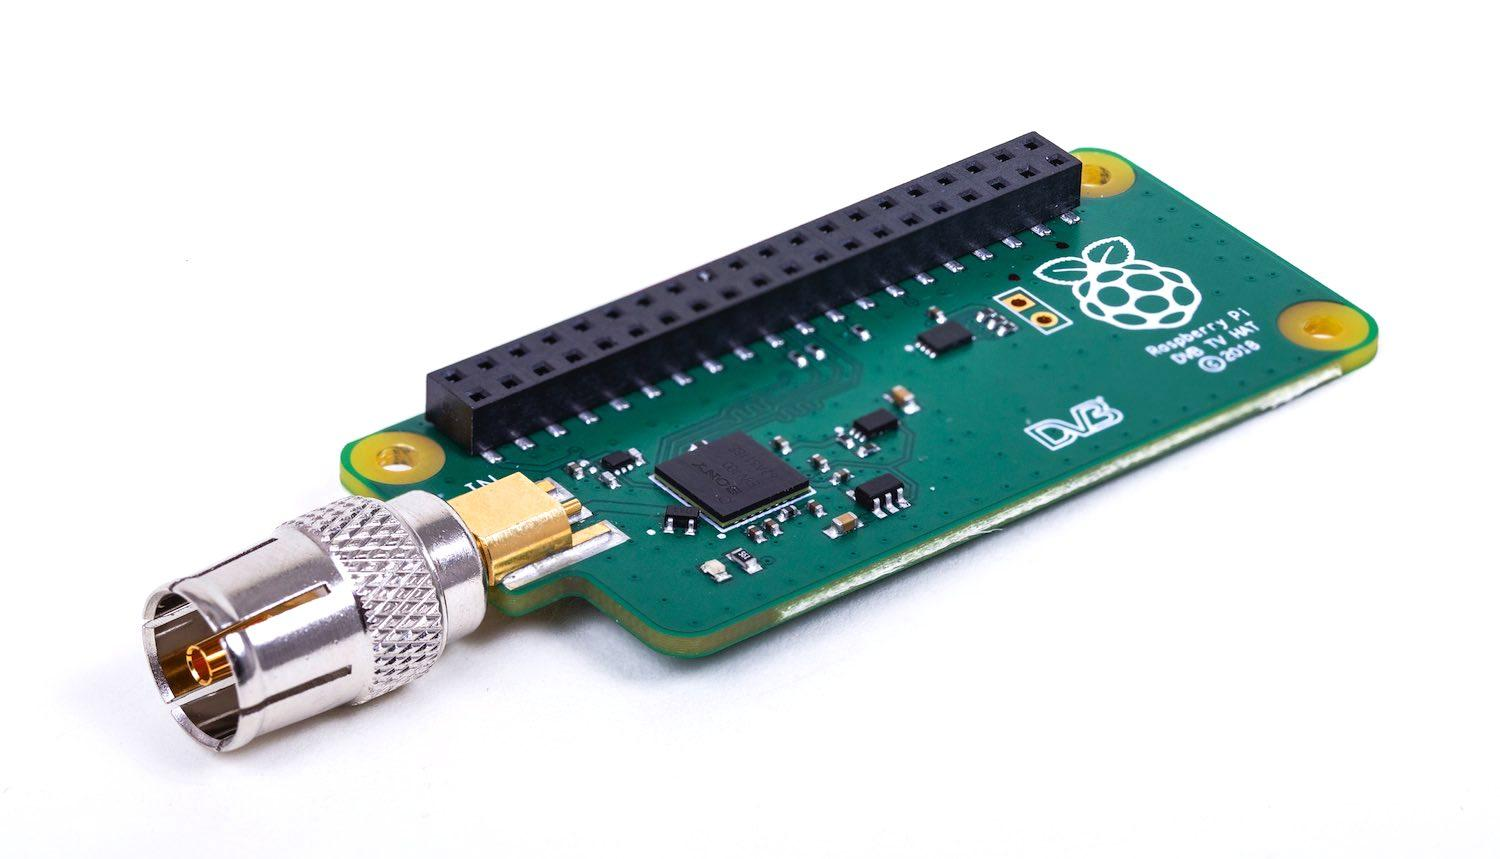 Raspberry Pi DVB-T / DVB-T2 TV µHat